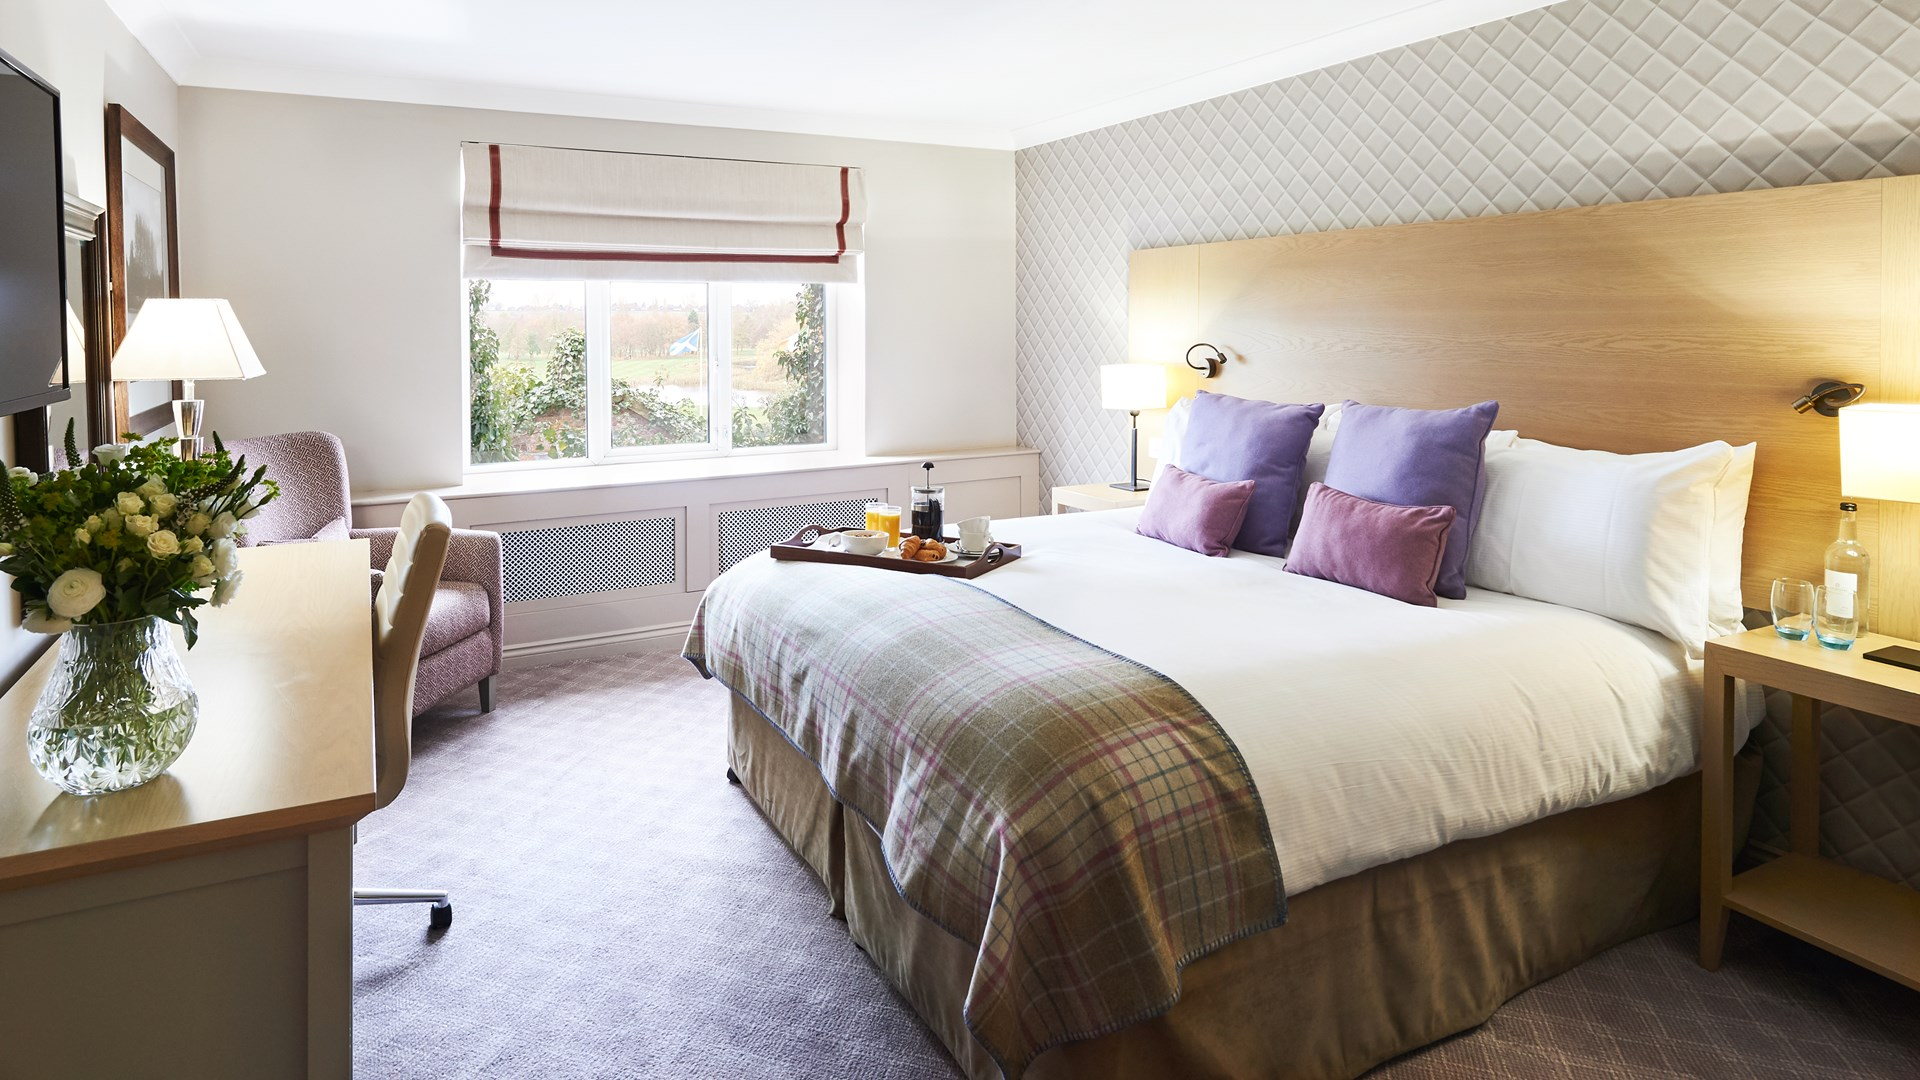 Manor House Suite with large kingsized bed with tartan interiors and wooden furniture and room service